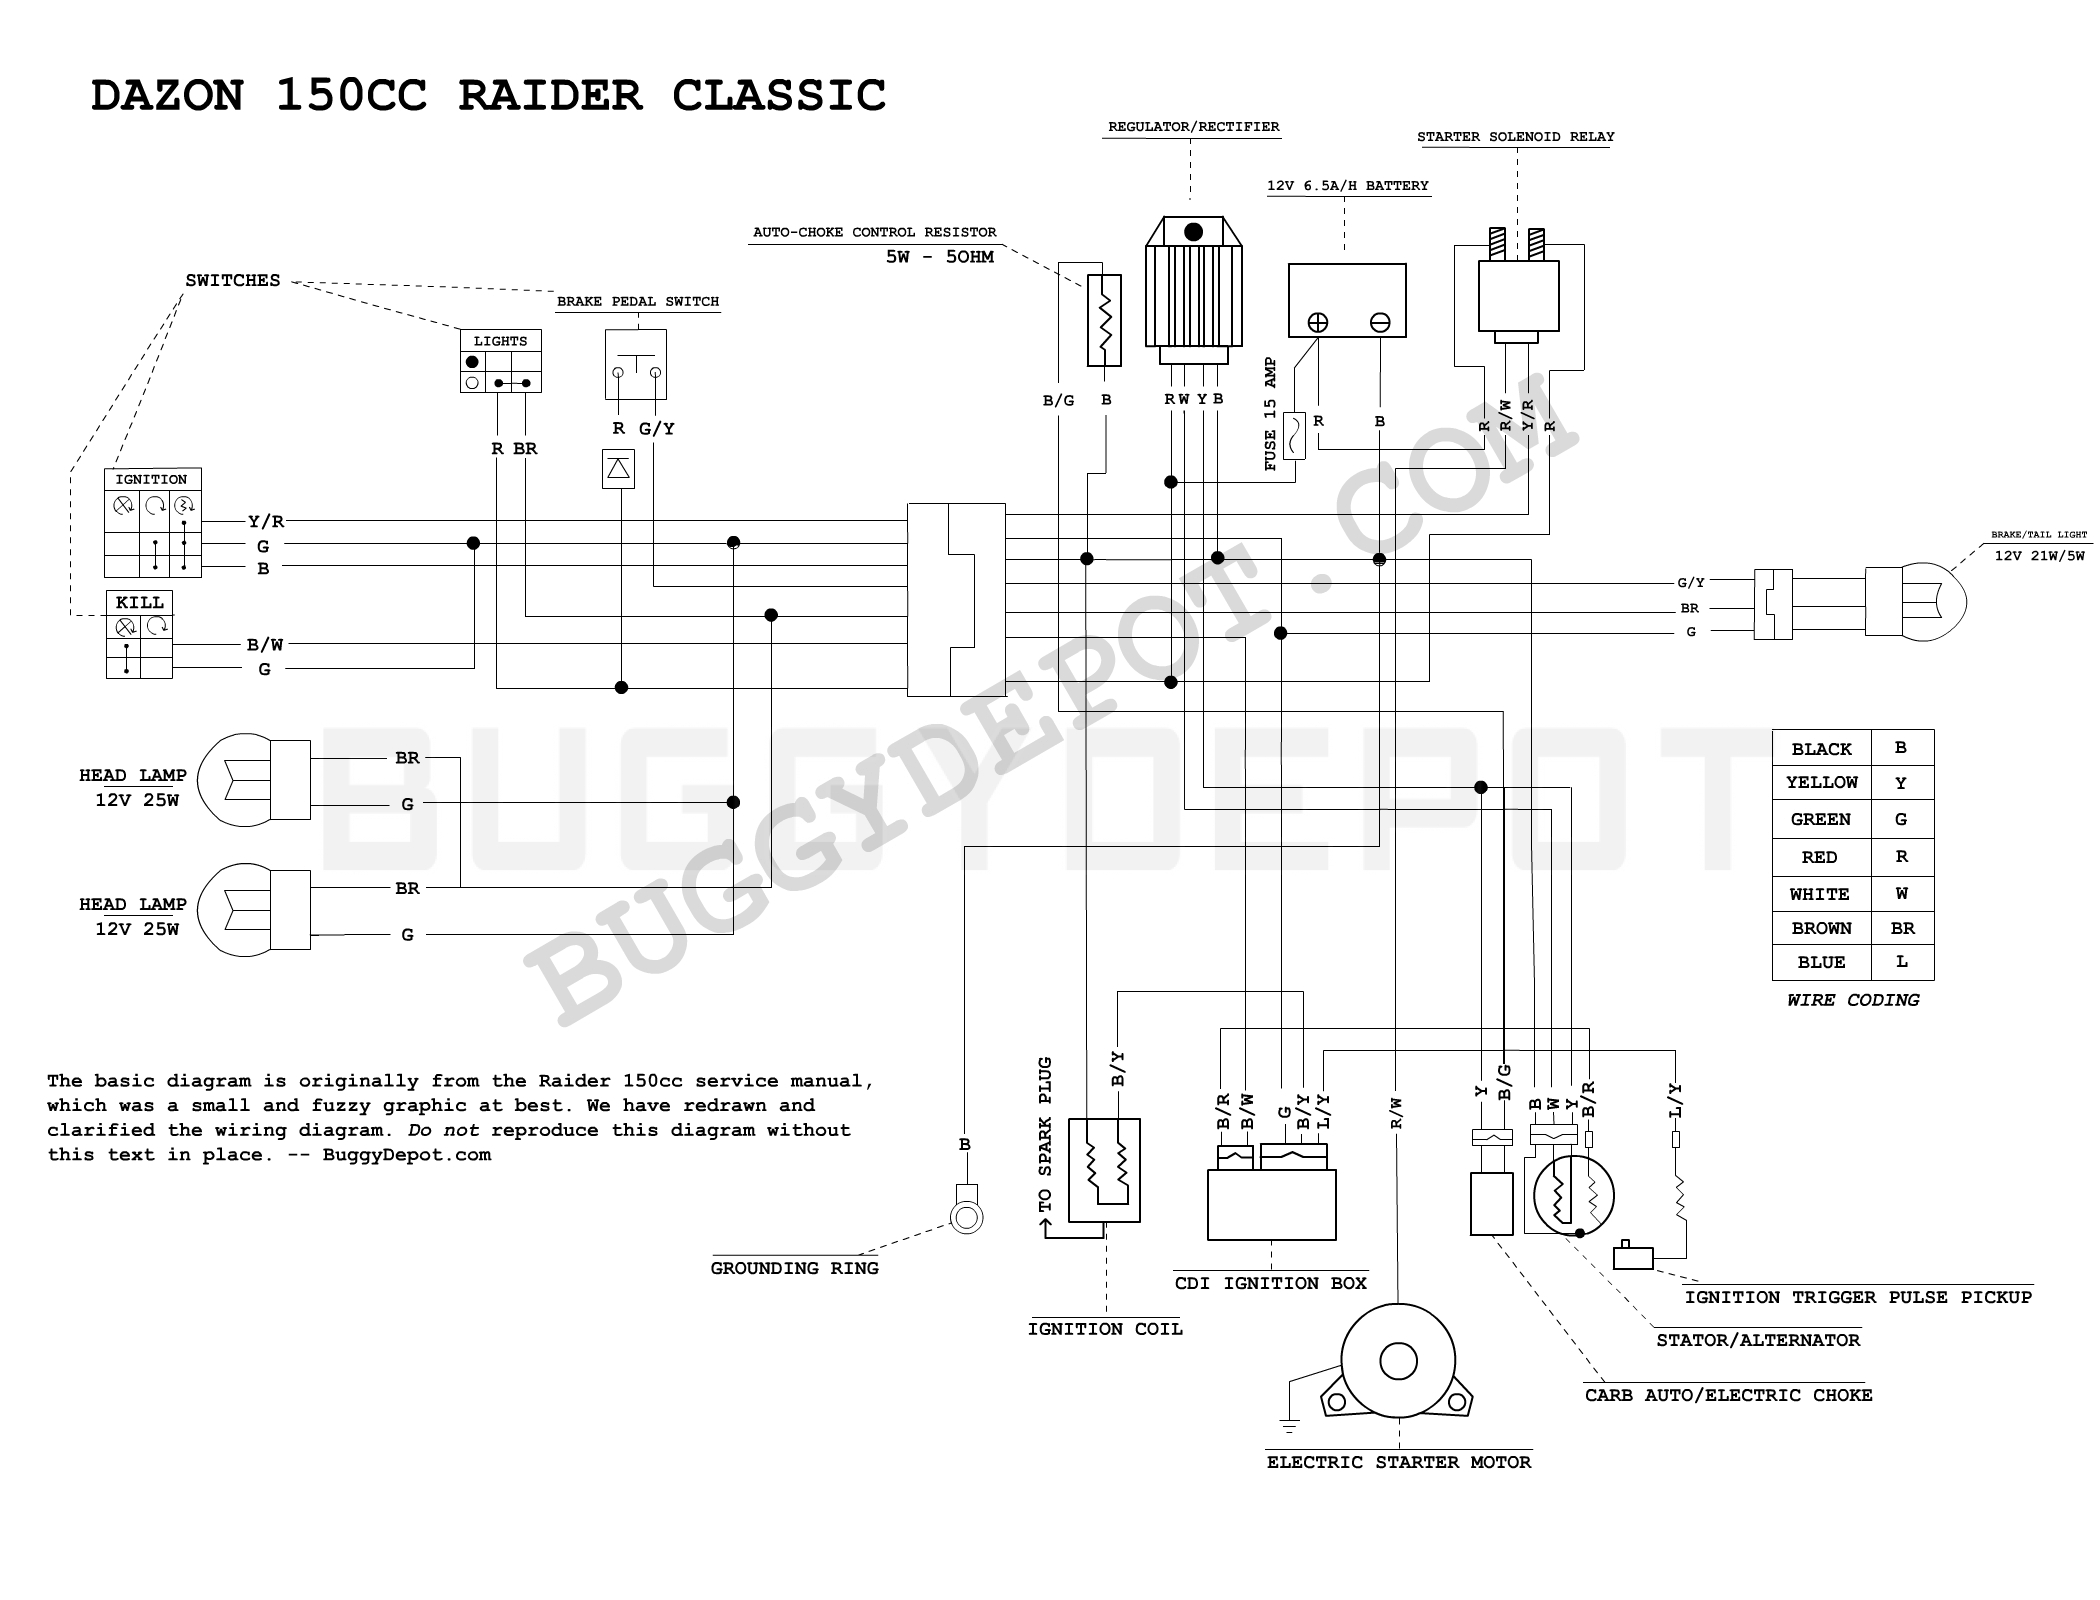 1972 dune buggy wiring diagram vw dune buggy ignition wiring diagram vw wiring diagrams article 33 1278205207 vw dune buggy ignition